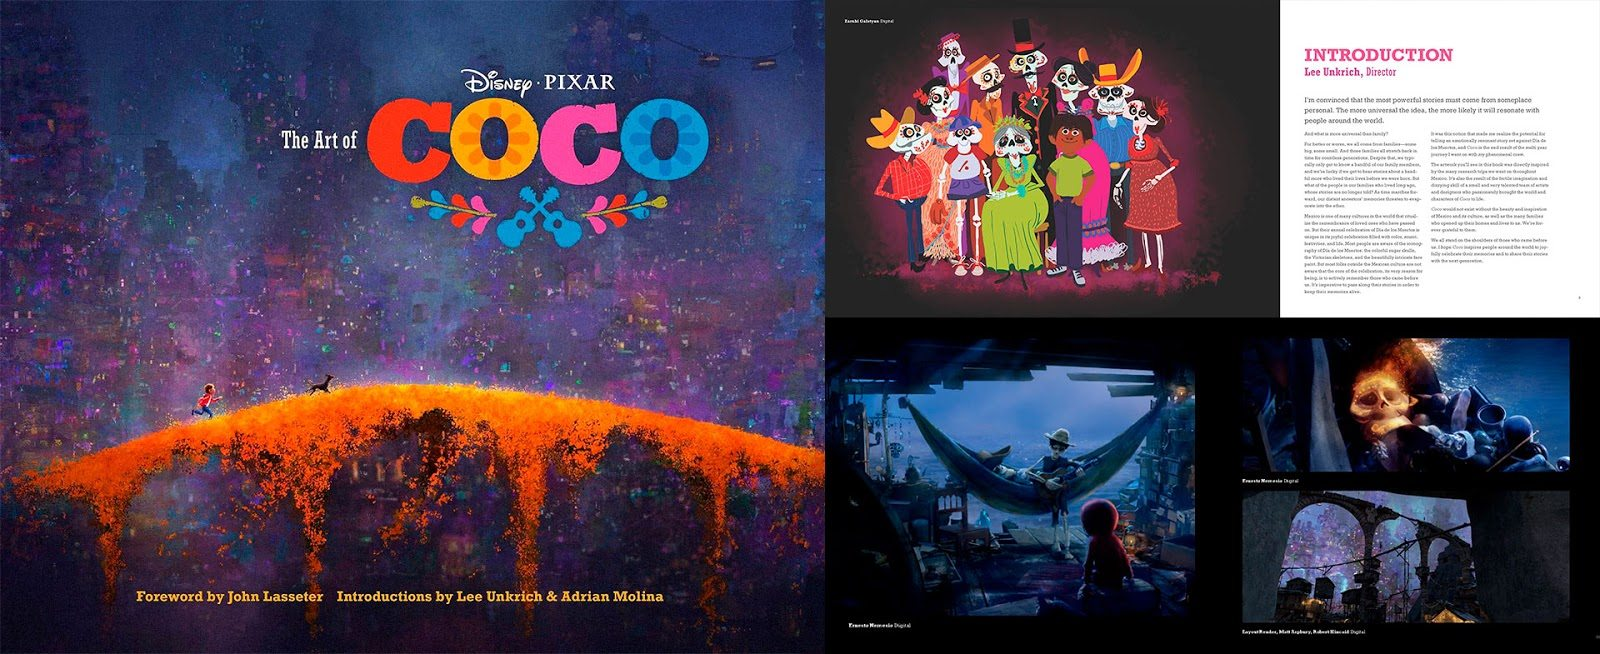 the art of coco libro